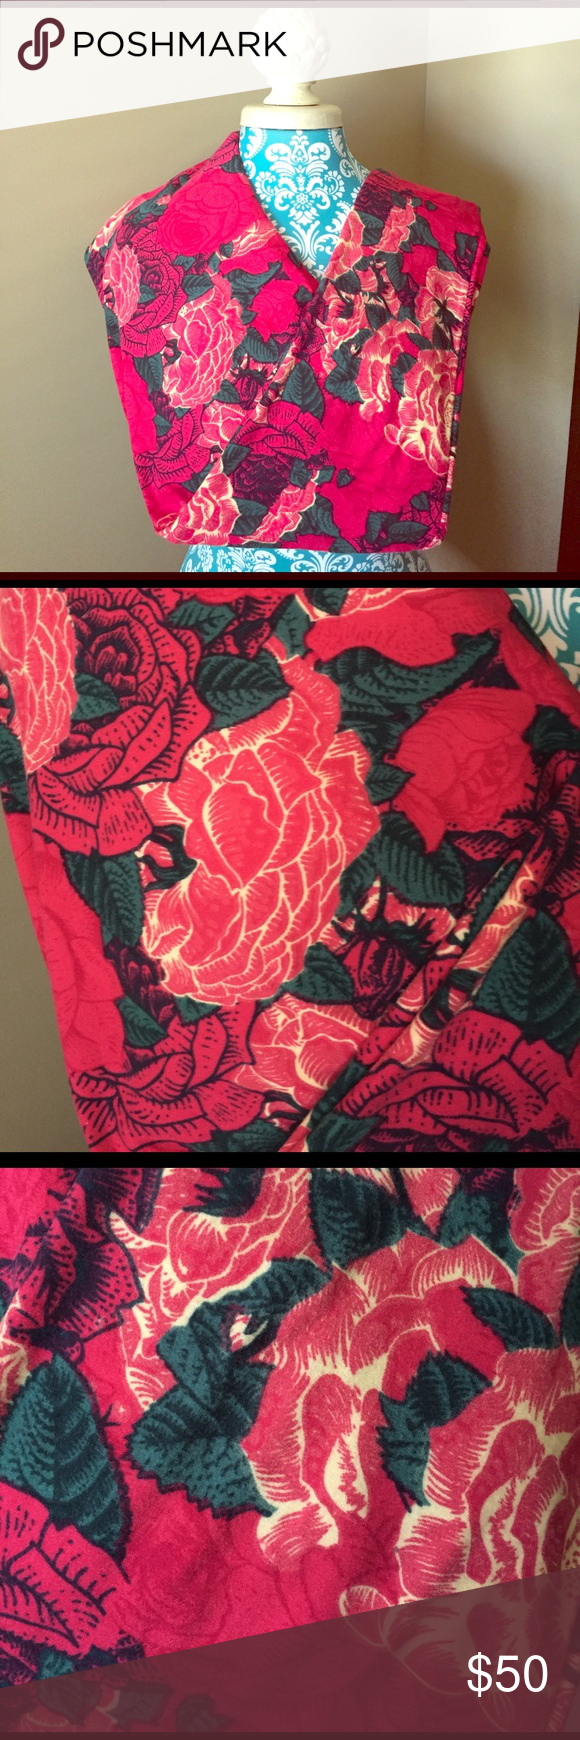 NWT LuLaRoe Rose Leggings 🌹 NWT LuLaRoe Rose Leggings 🌹 Dark magenta background with dark green leaves, yellow accents, black outlining, and several hues of the magenta. Large roses on the entire background in different colors. These are stunning. Tried on. Can no longer wear TC. *CROSS POSTED* LuLaRoe Pants Leggings